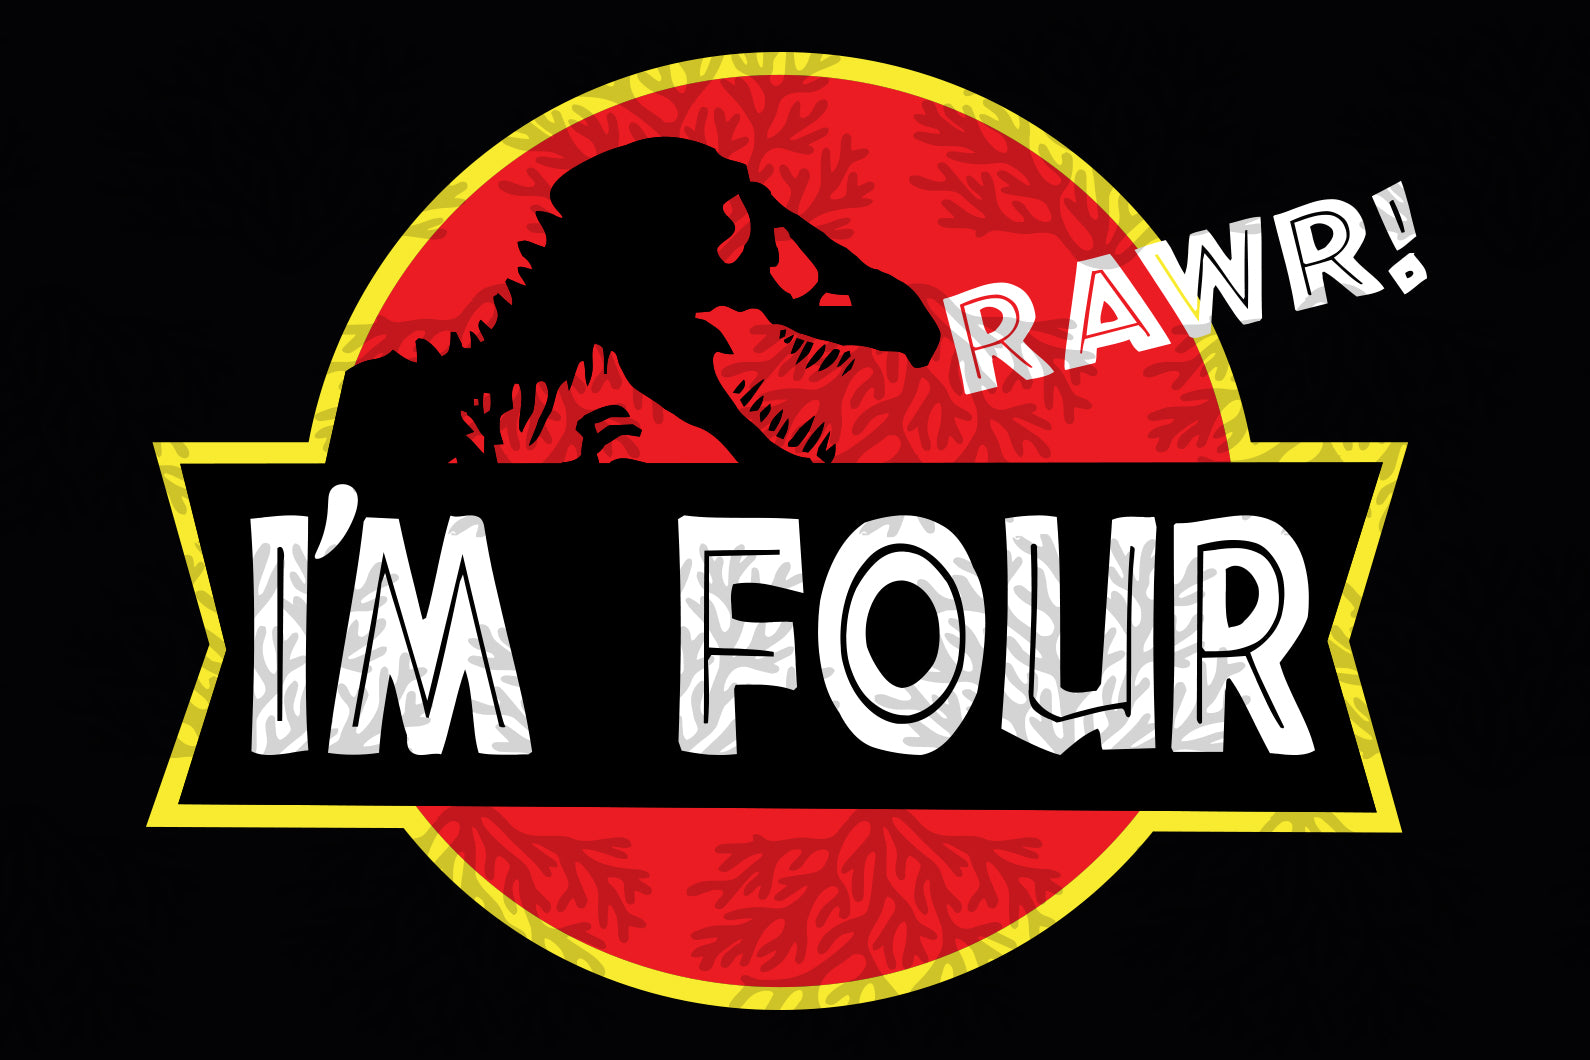 I am four rawr,dinosaur svg,birthday svg,birthday boy svg,4st birthday,birthday anniversary,svg cut files, svg clipart, silhouette svg, cricut svg files, decal and vinyl